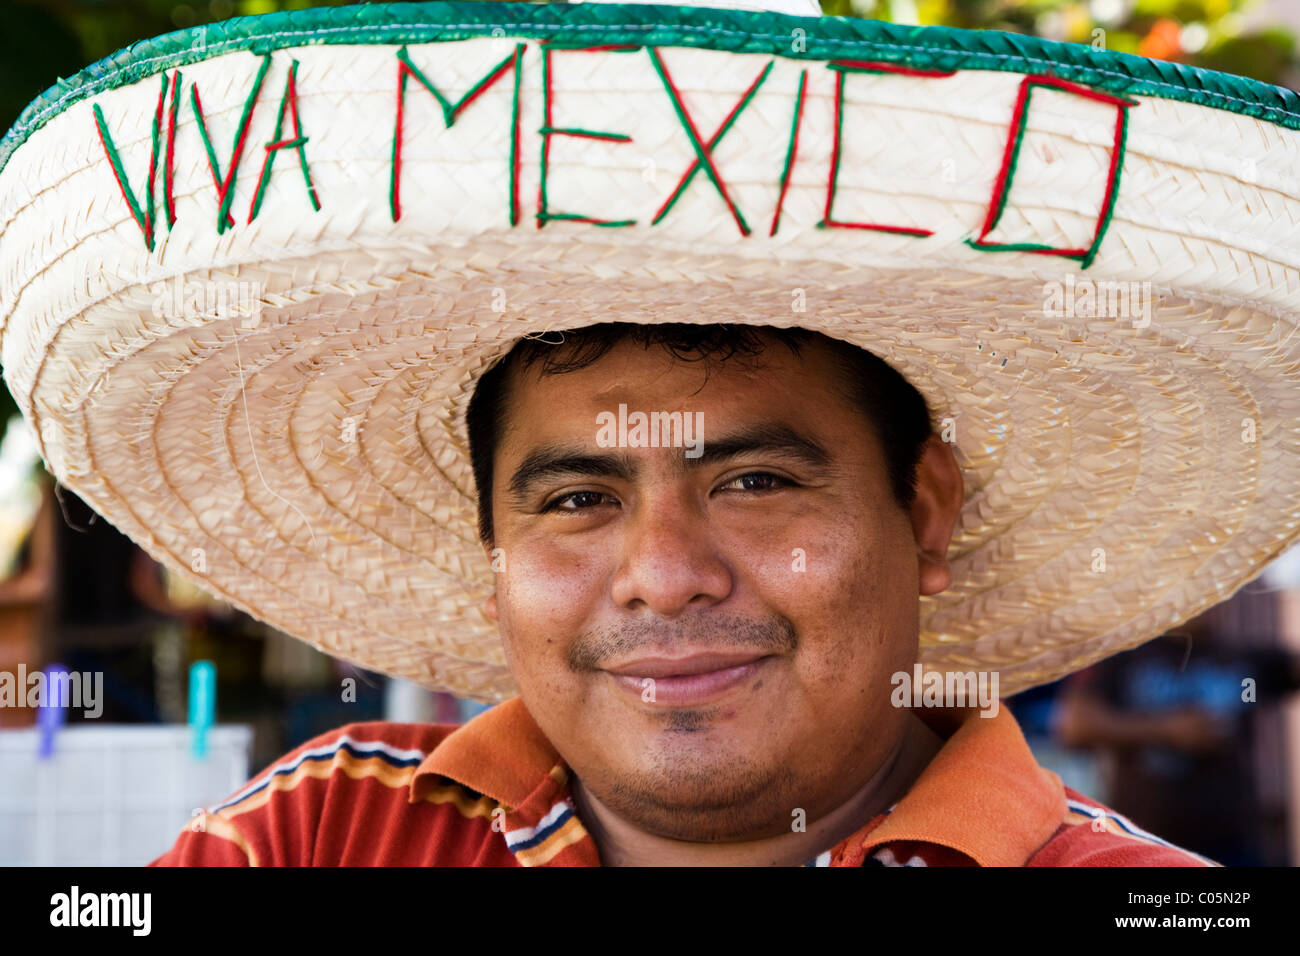 men of mexico